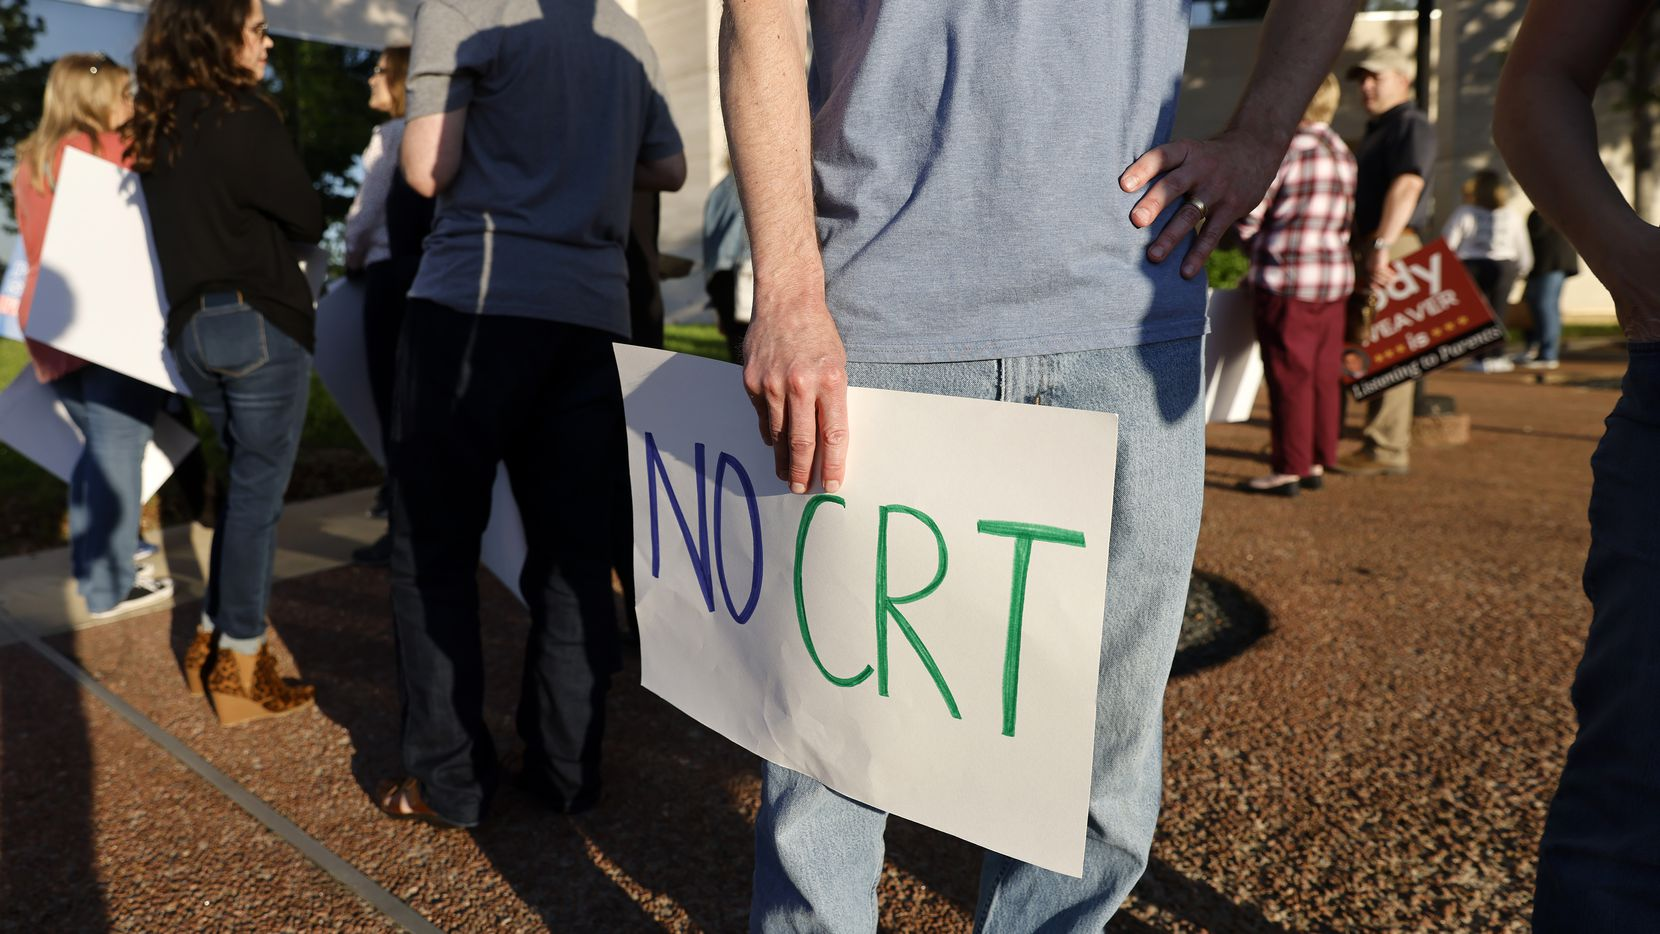 Michael Woodmansee brought a 'No CRT' sign to show concern about critical race theory being taught in schools during a heated debate about diversity and inclusion at Plano ISD's board meeting in the Plano Independent School District Administration Building, May 4, 2021.